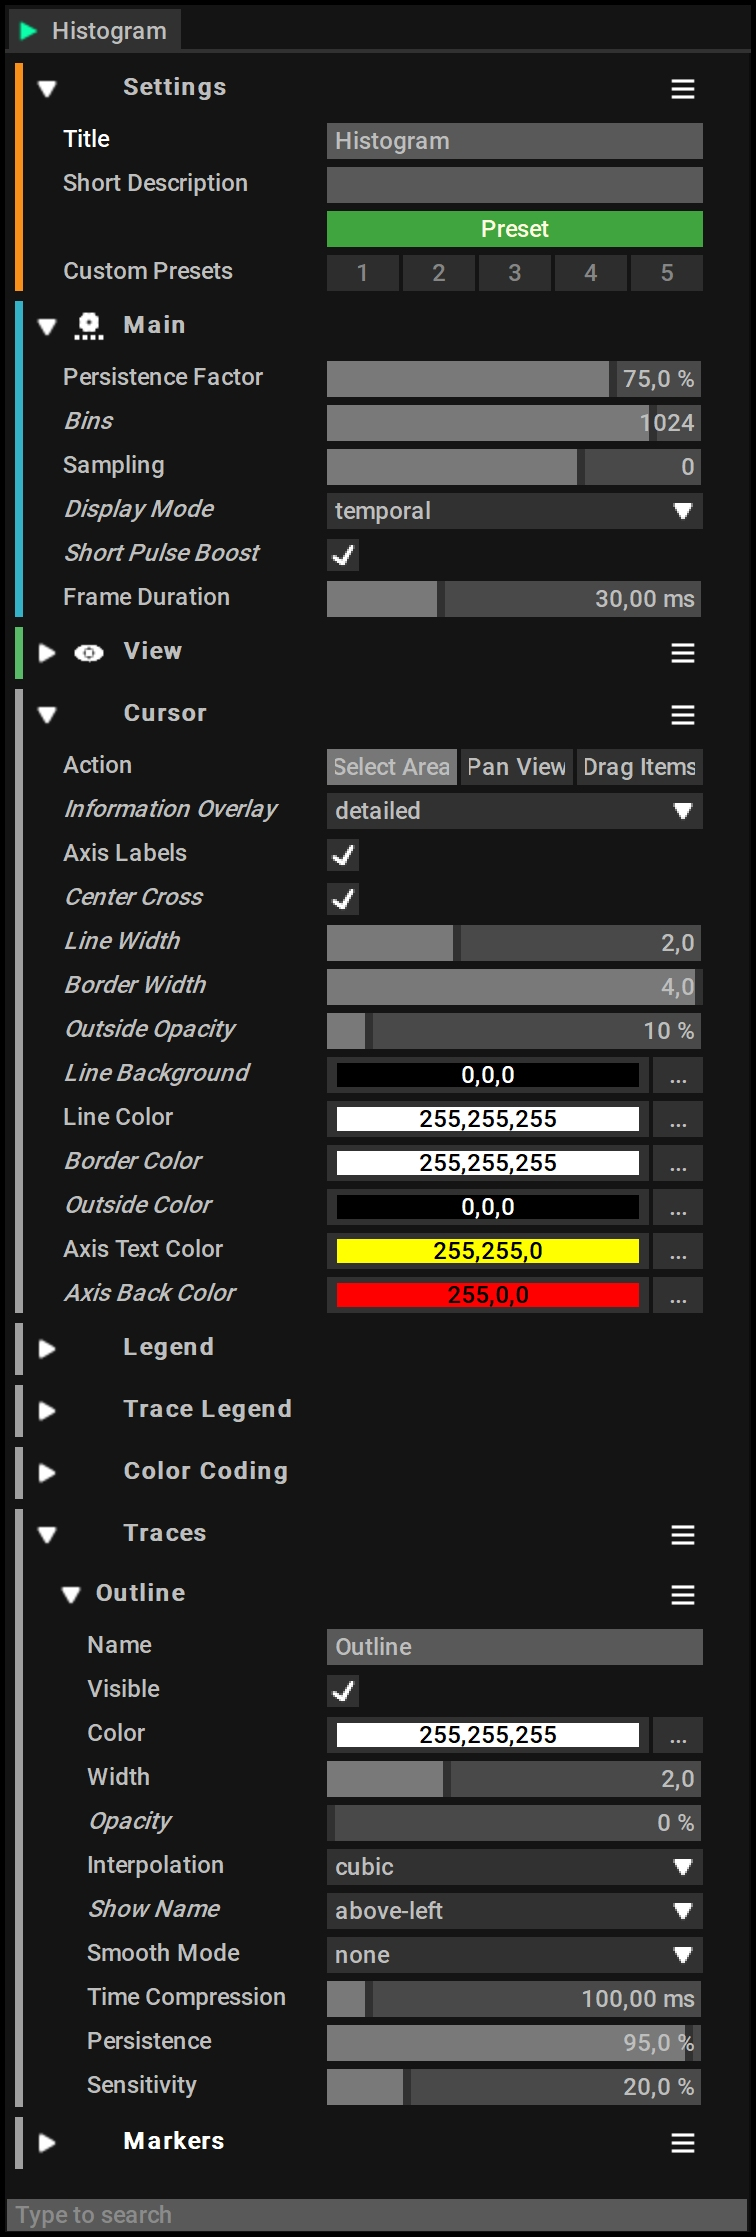 Histogram (Persistance) View Settings